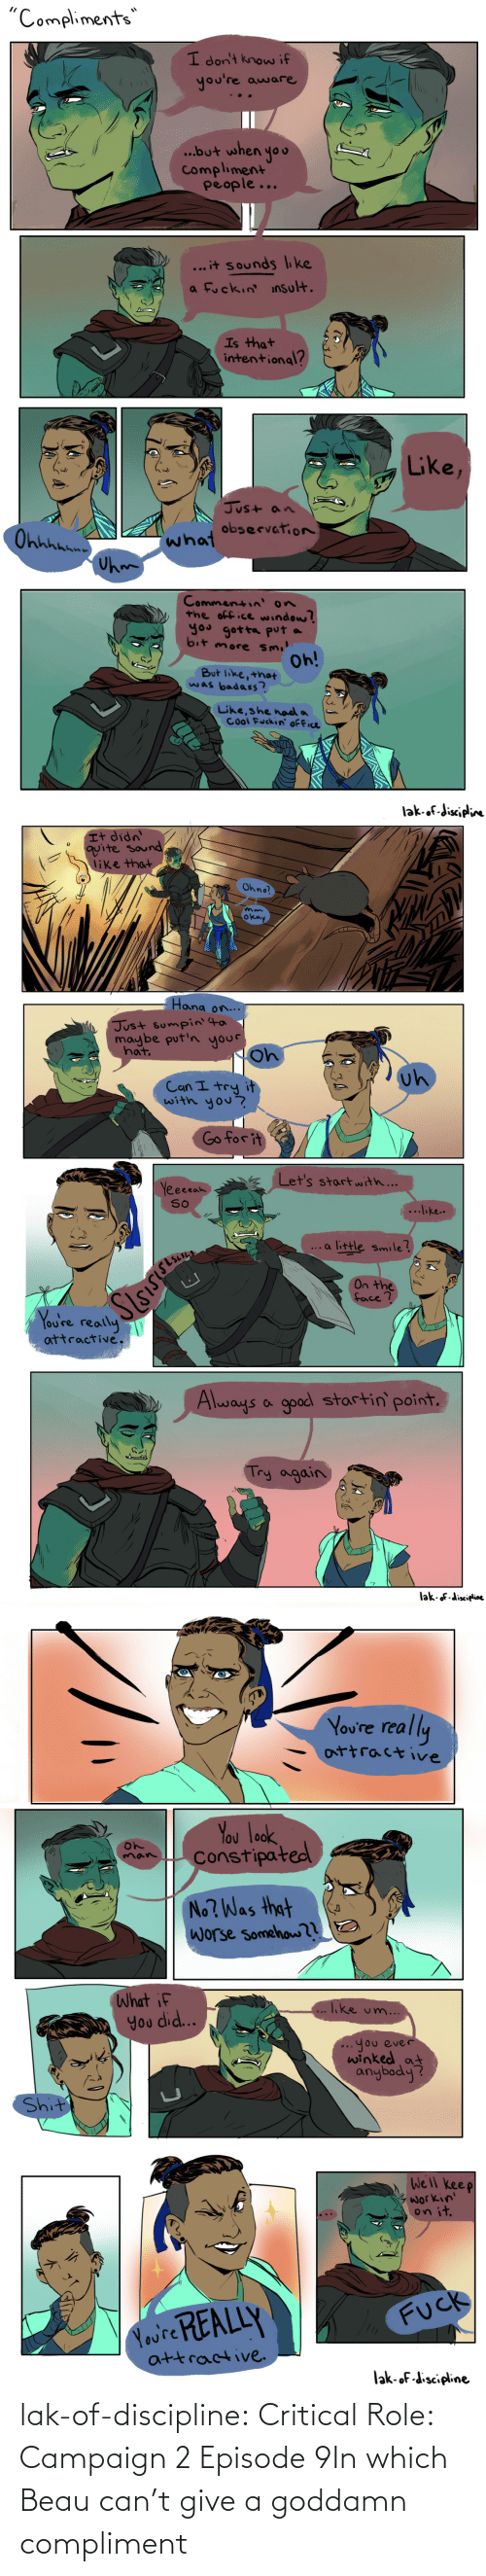 Tumblr, Blog, and Com: lak-of-discipline:  Critical Role: Campaign2 Episode 9In which Beau can't give a goddamn compliment